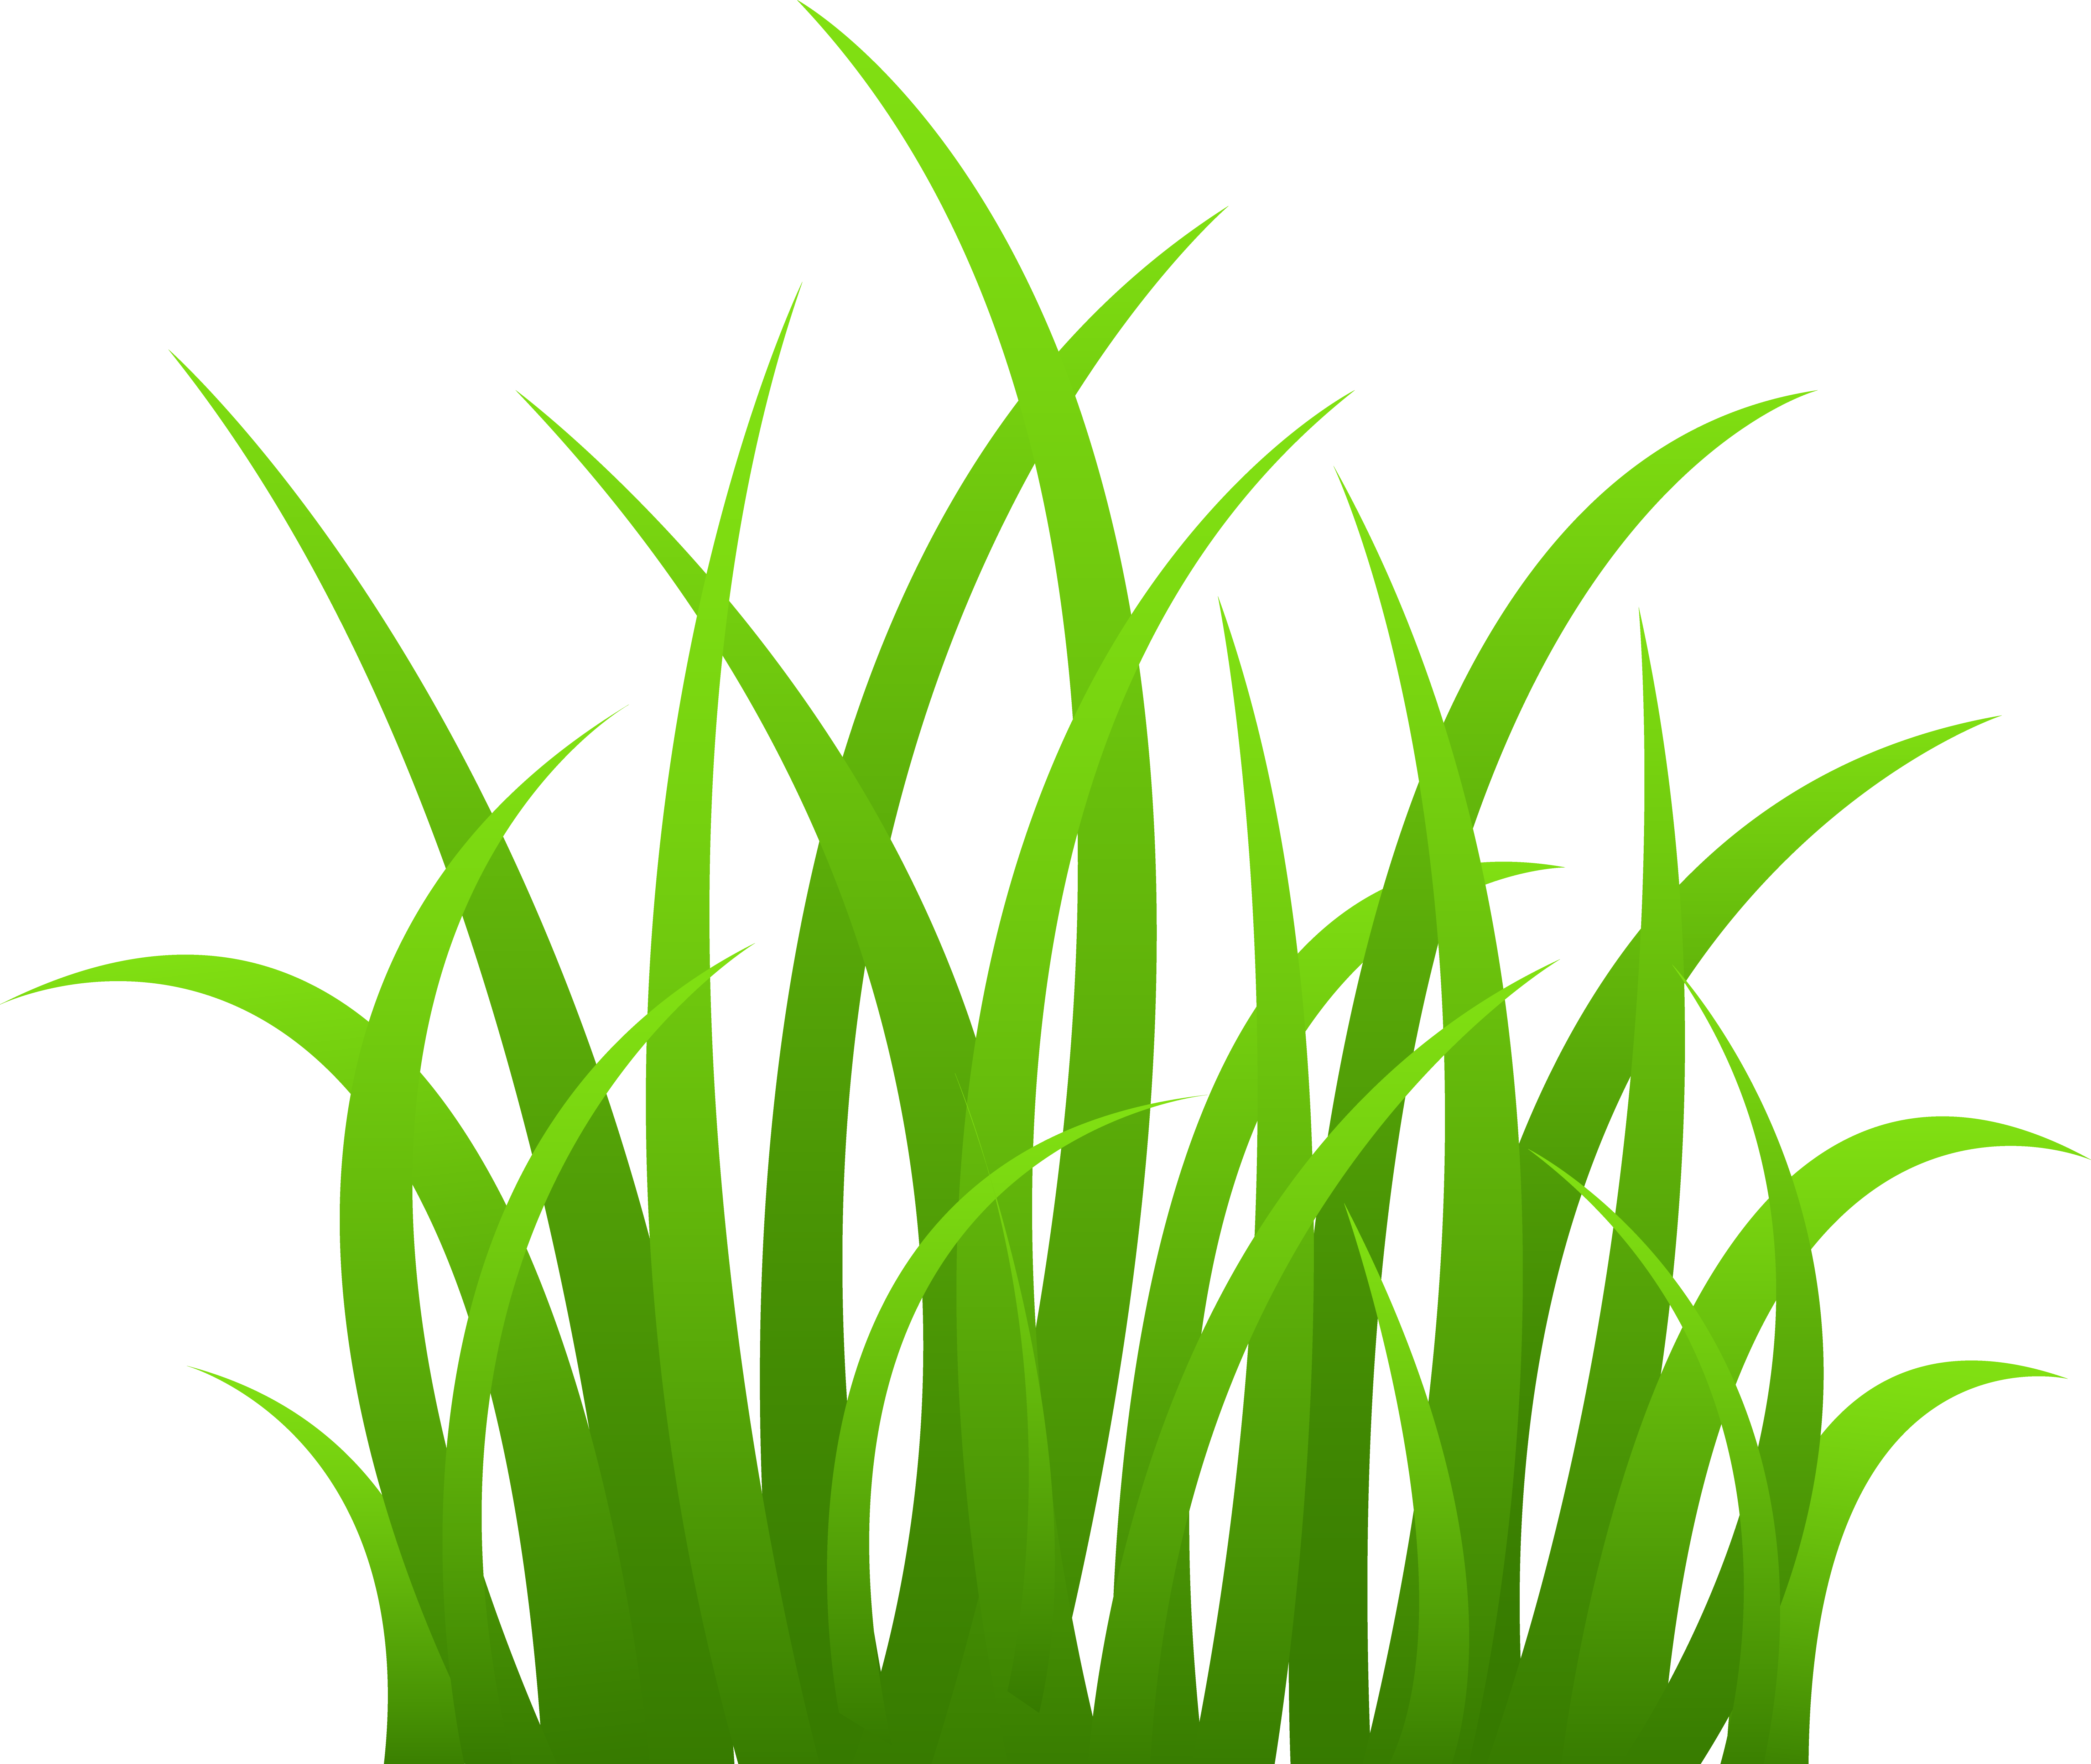 grass border clip art google search borders get a greener safer affordable lawn grow it greener chicago call for a estimate on spring clean ups lawn treatments mowing services